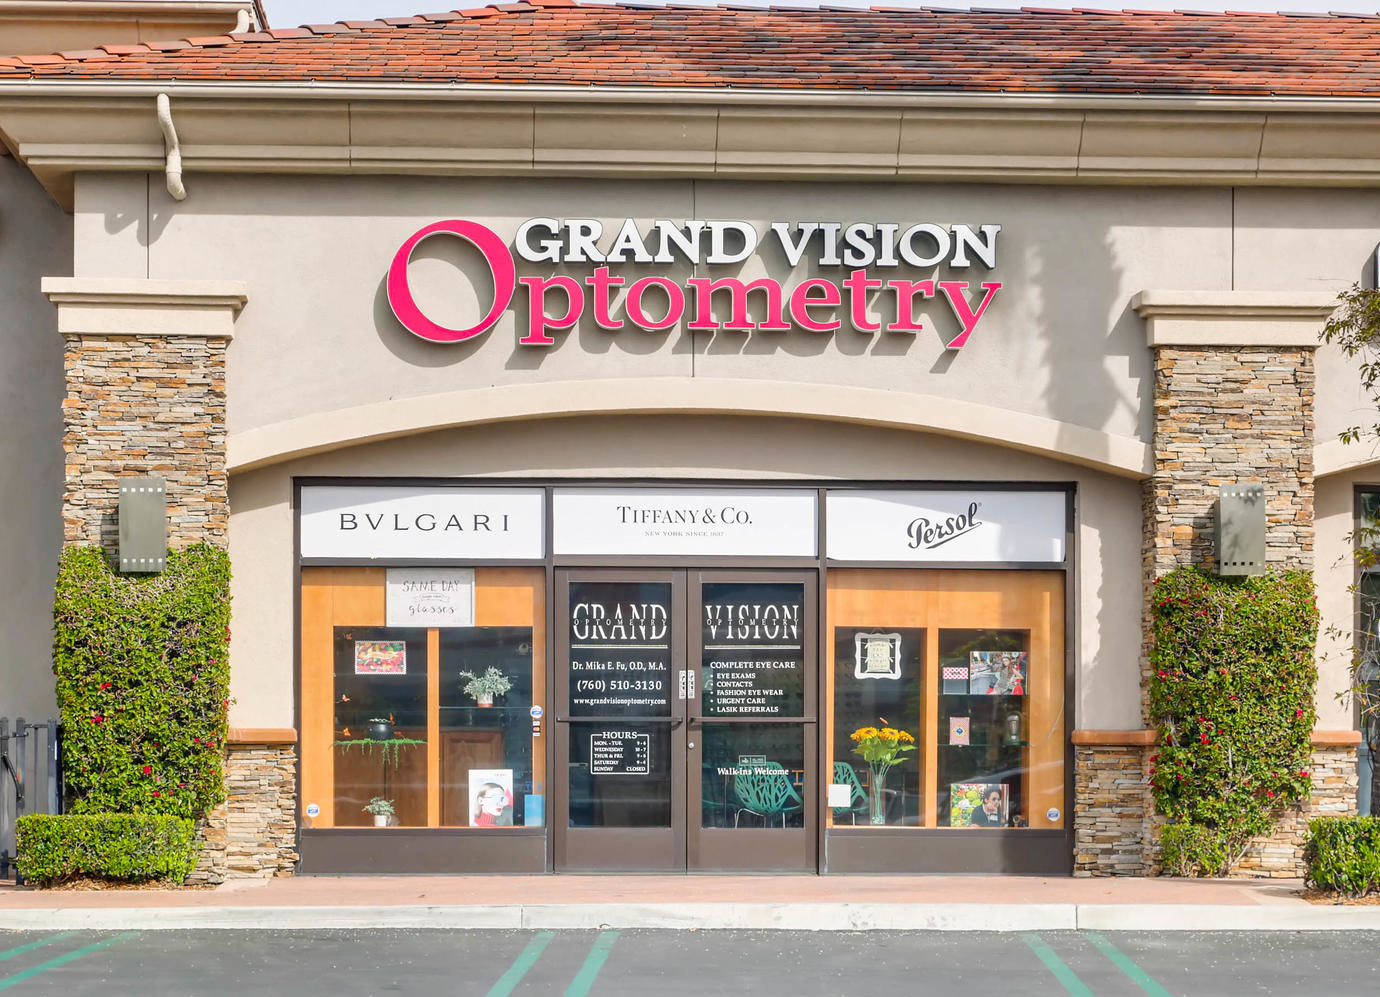 Location & Hours — Grand Vision Optometry - Eye Doctor San Marcos CA